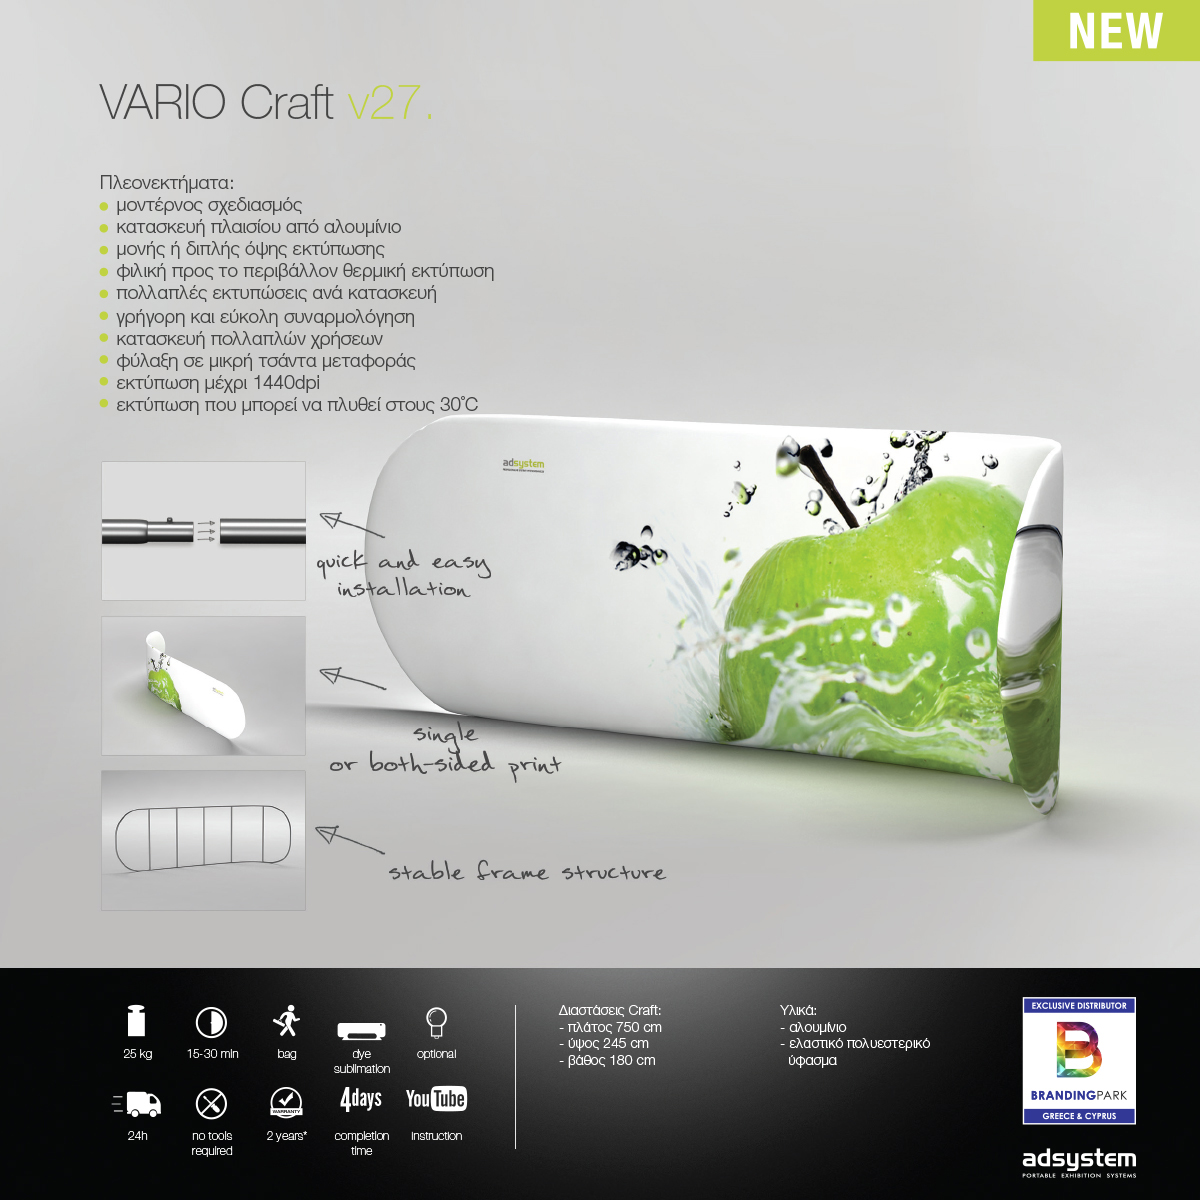 Υφασμάτινο backdrop VARIO Craft v27. new product